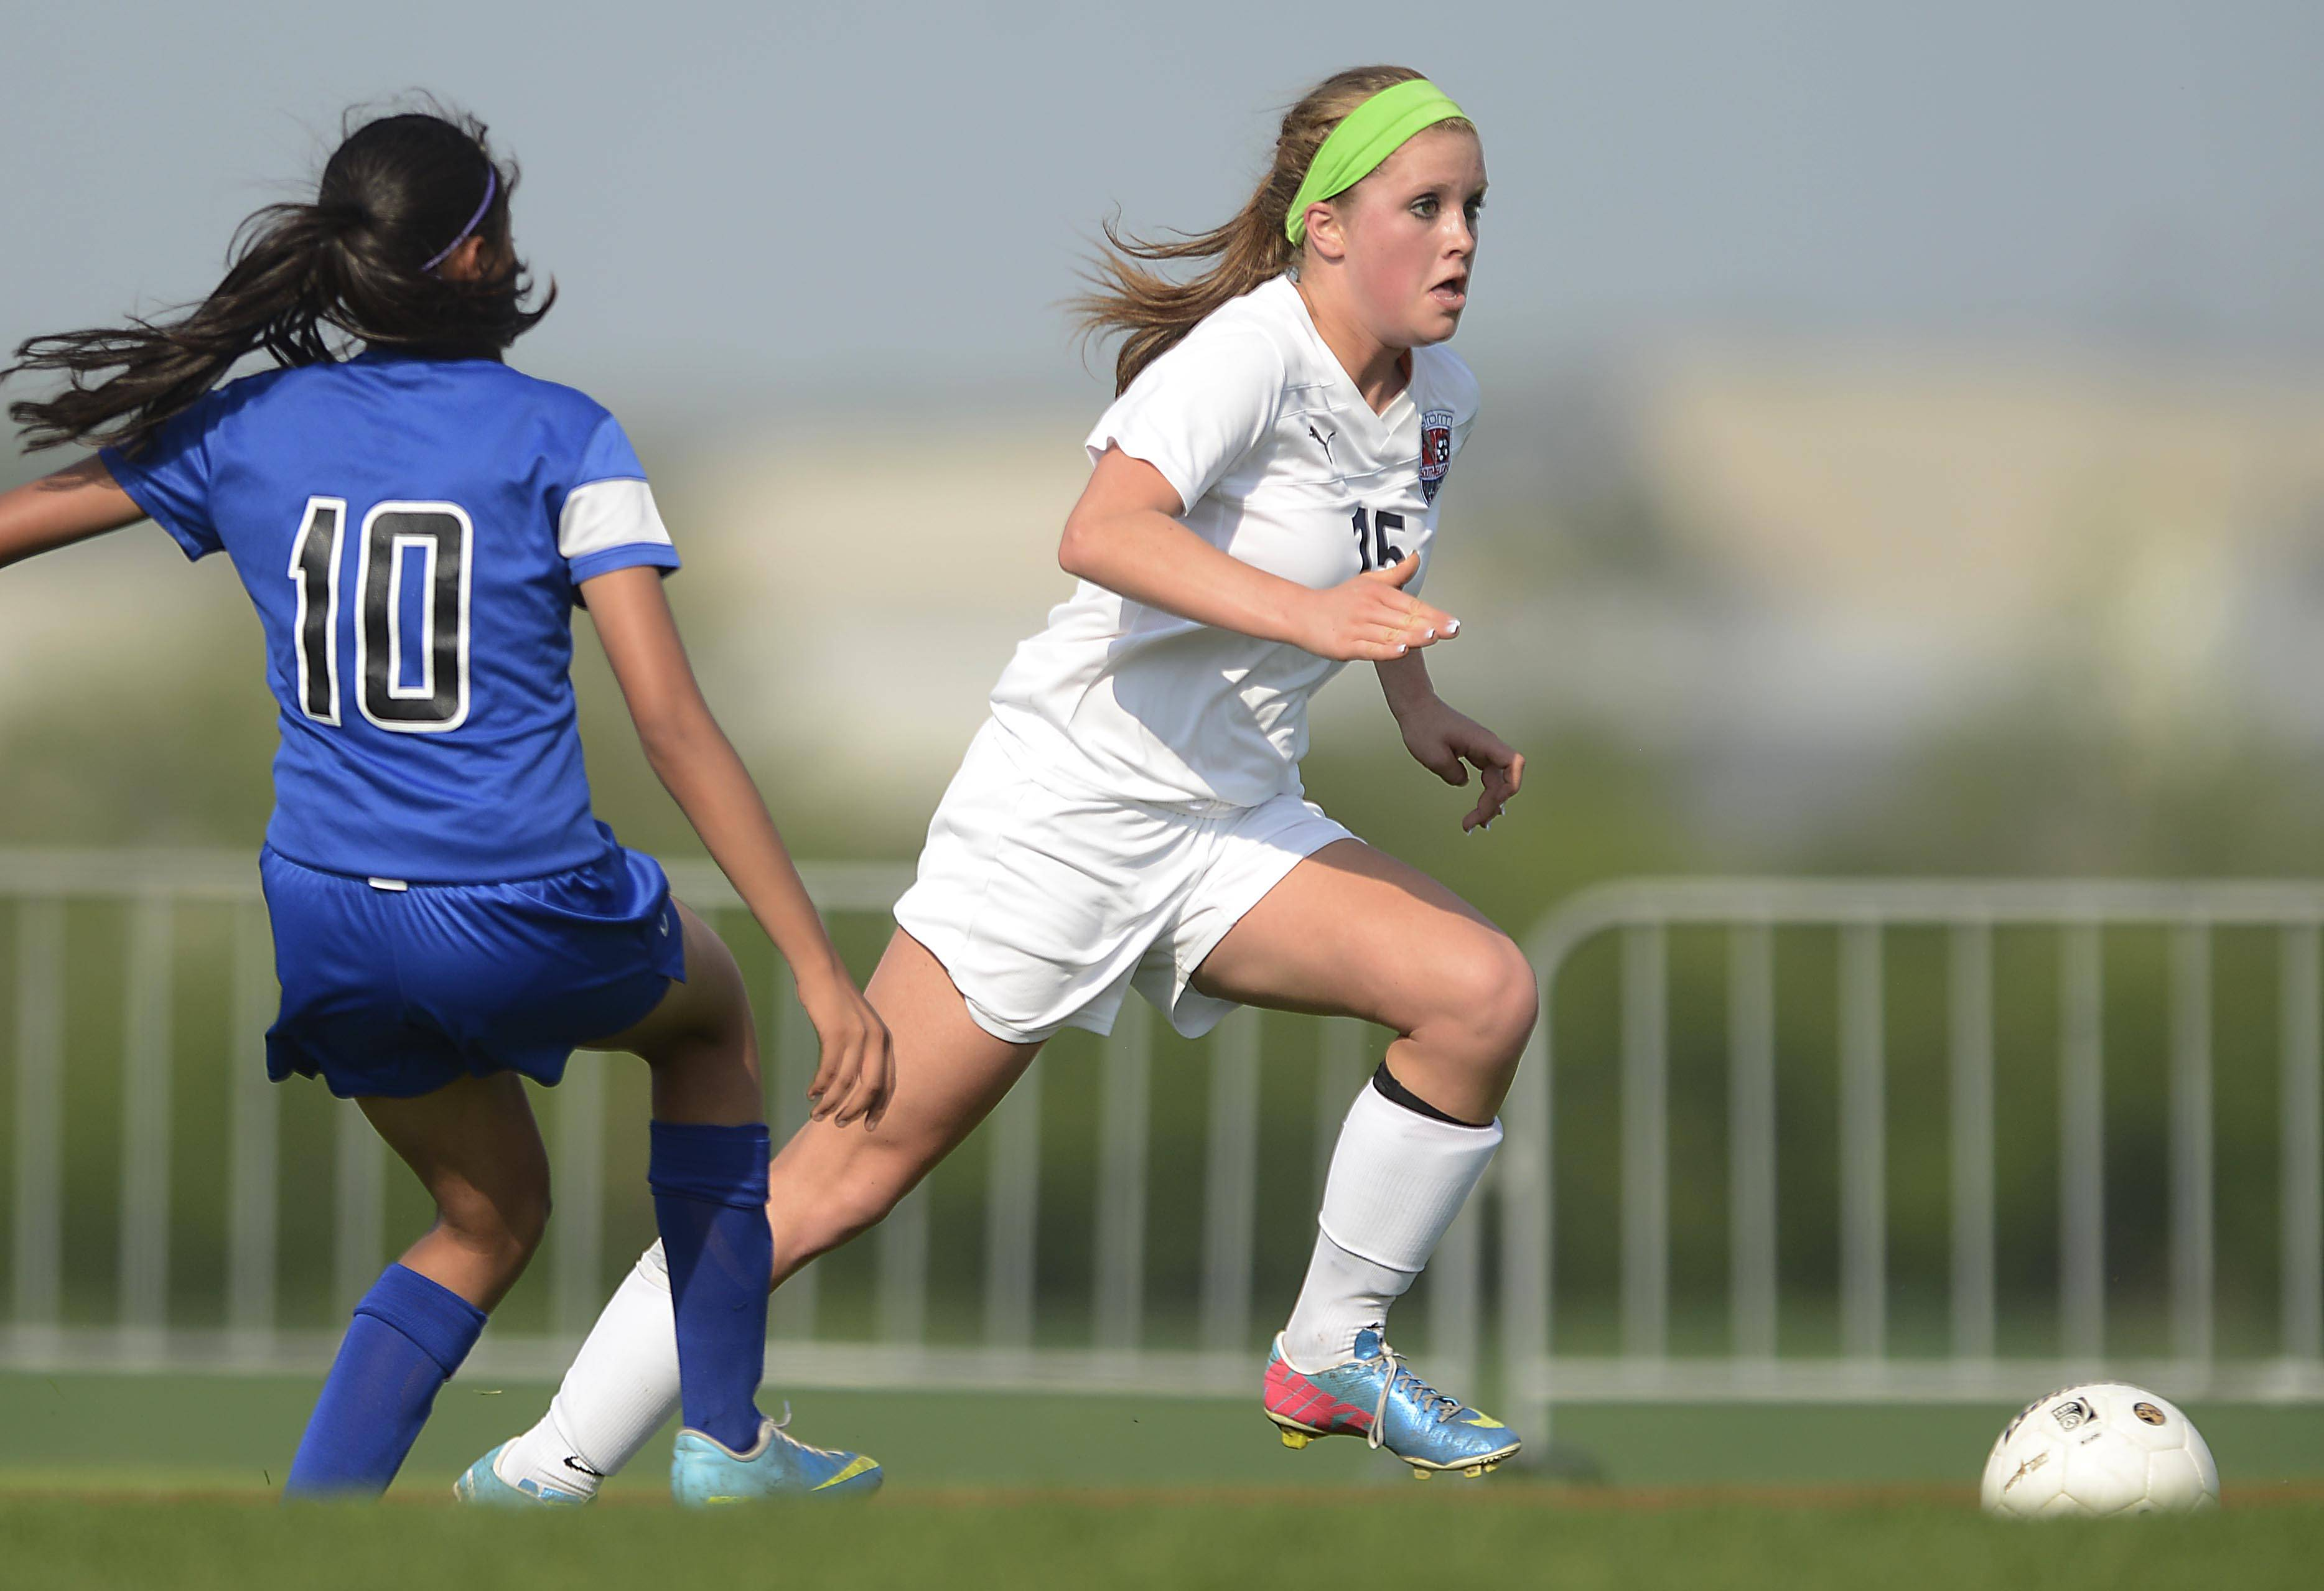 South Elgin's Anna Tracy gets around Larkin's Maria Mendoza Tuesday in South Elgin. Tracy scored twice in the first half.